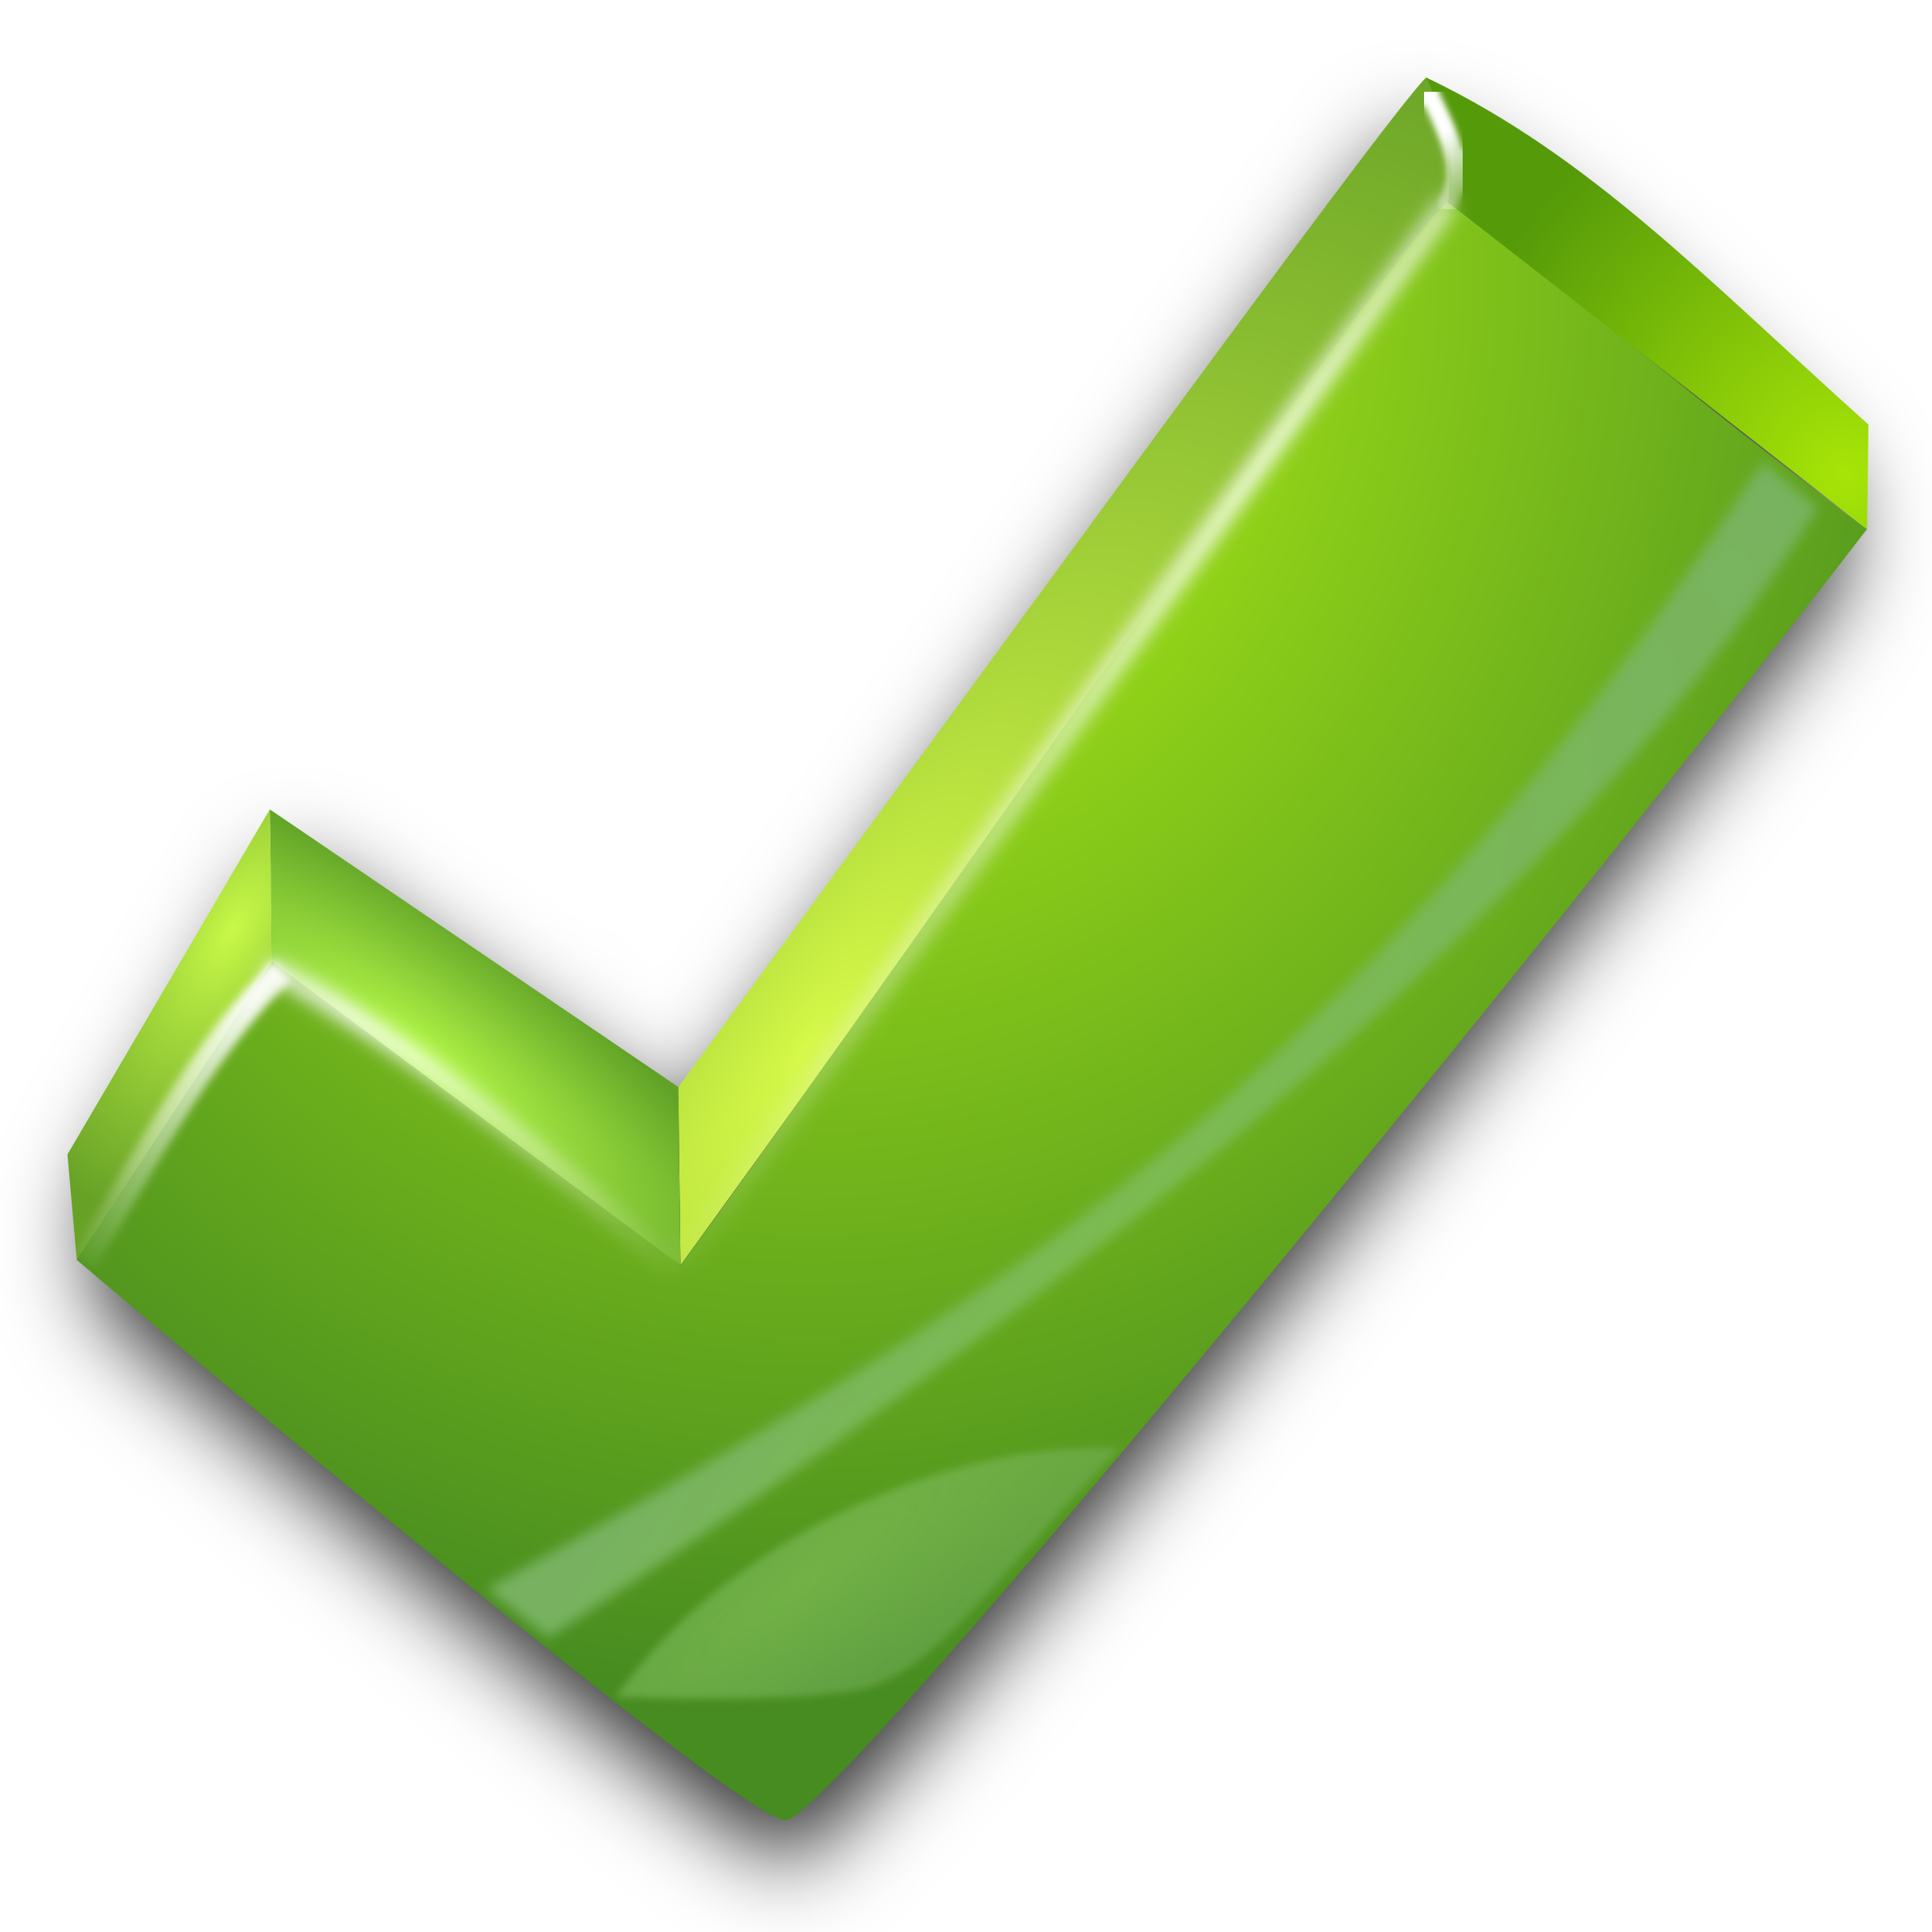 Green Tick PNG Photo - Tick Mark PNG HD